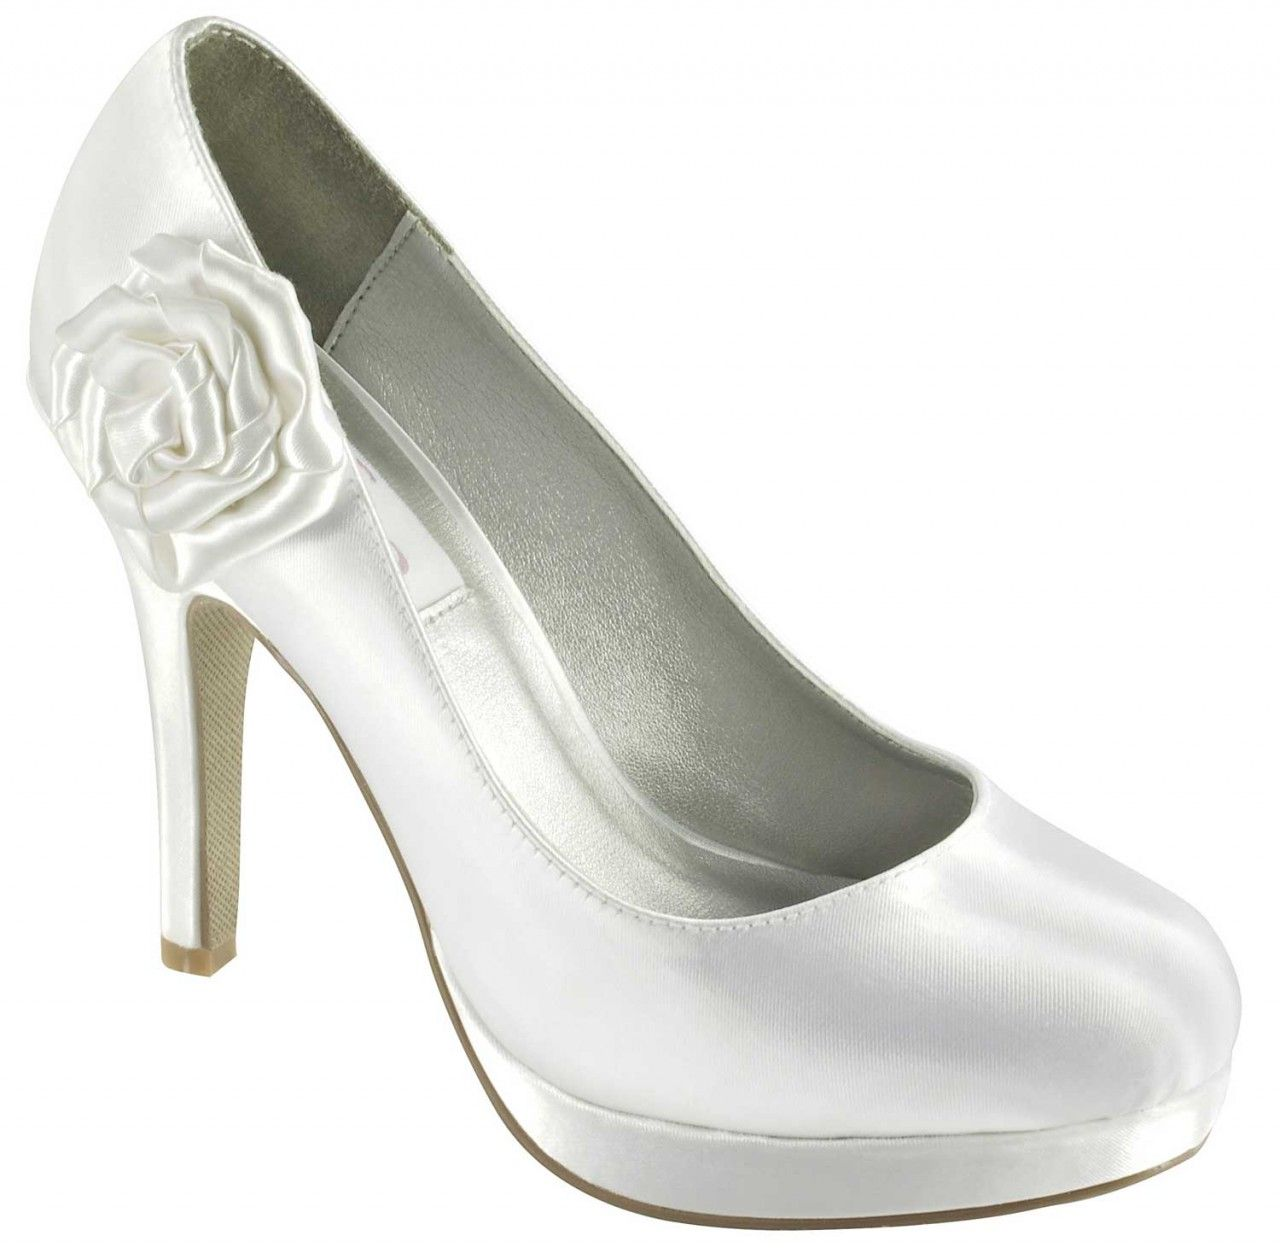 Pin by Cindy Crestin on Shoes Pinterest